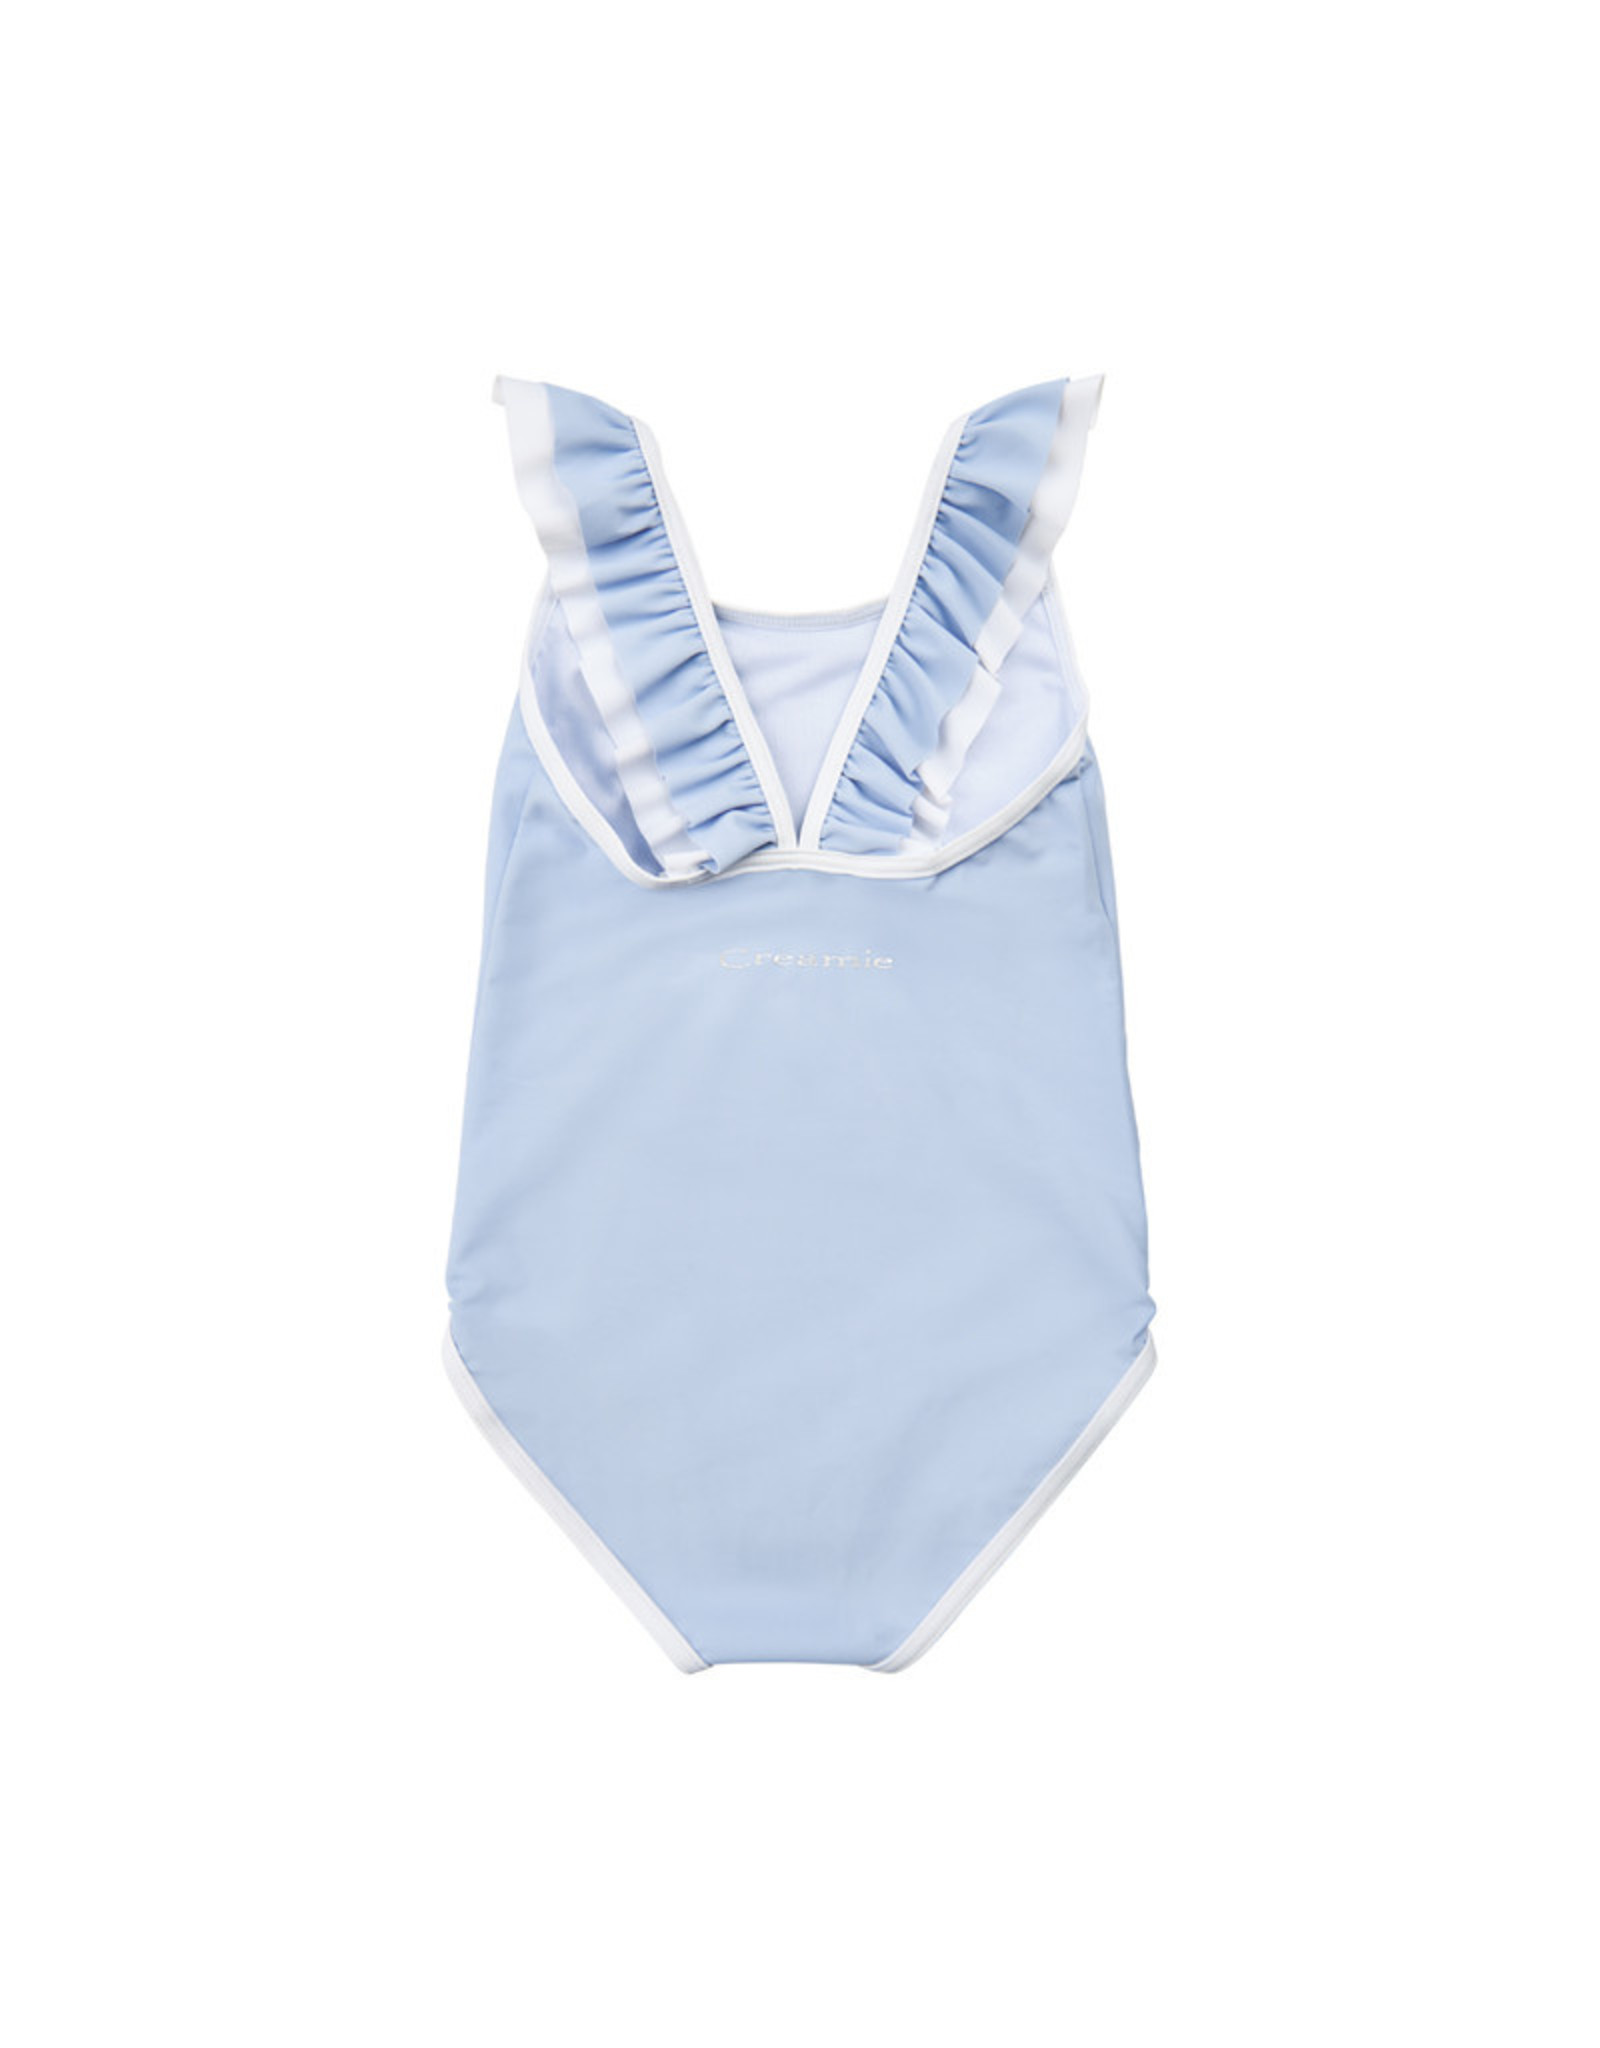 Creamie Creamie Swimsuit ruffle UPF 50+  xenon blue (OUTLET)